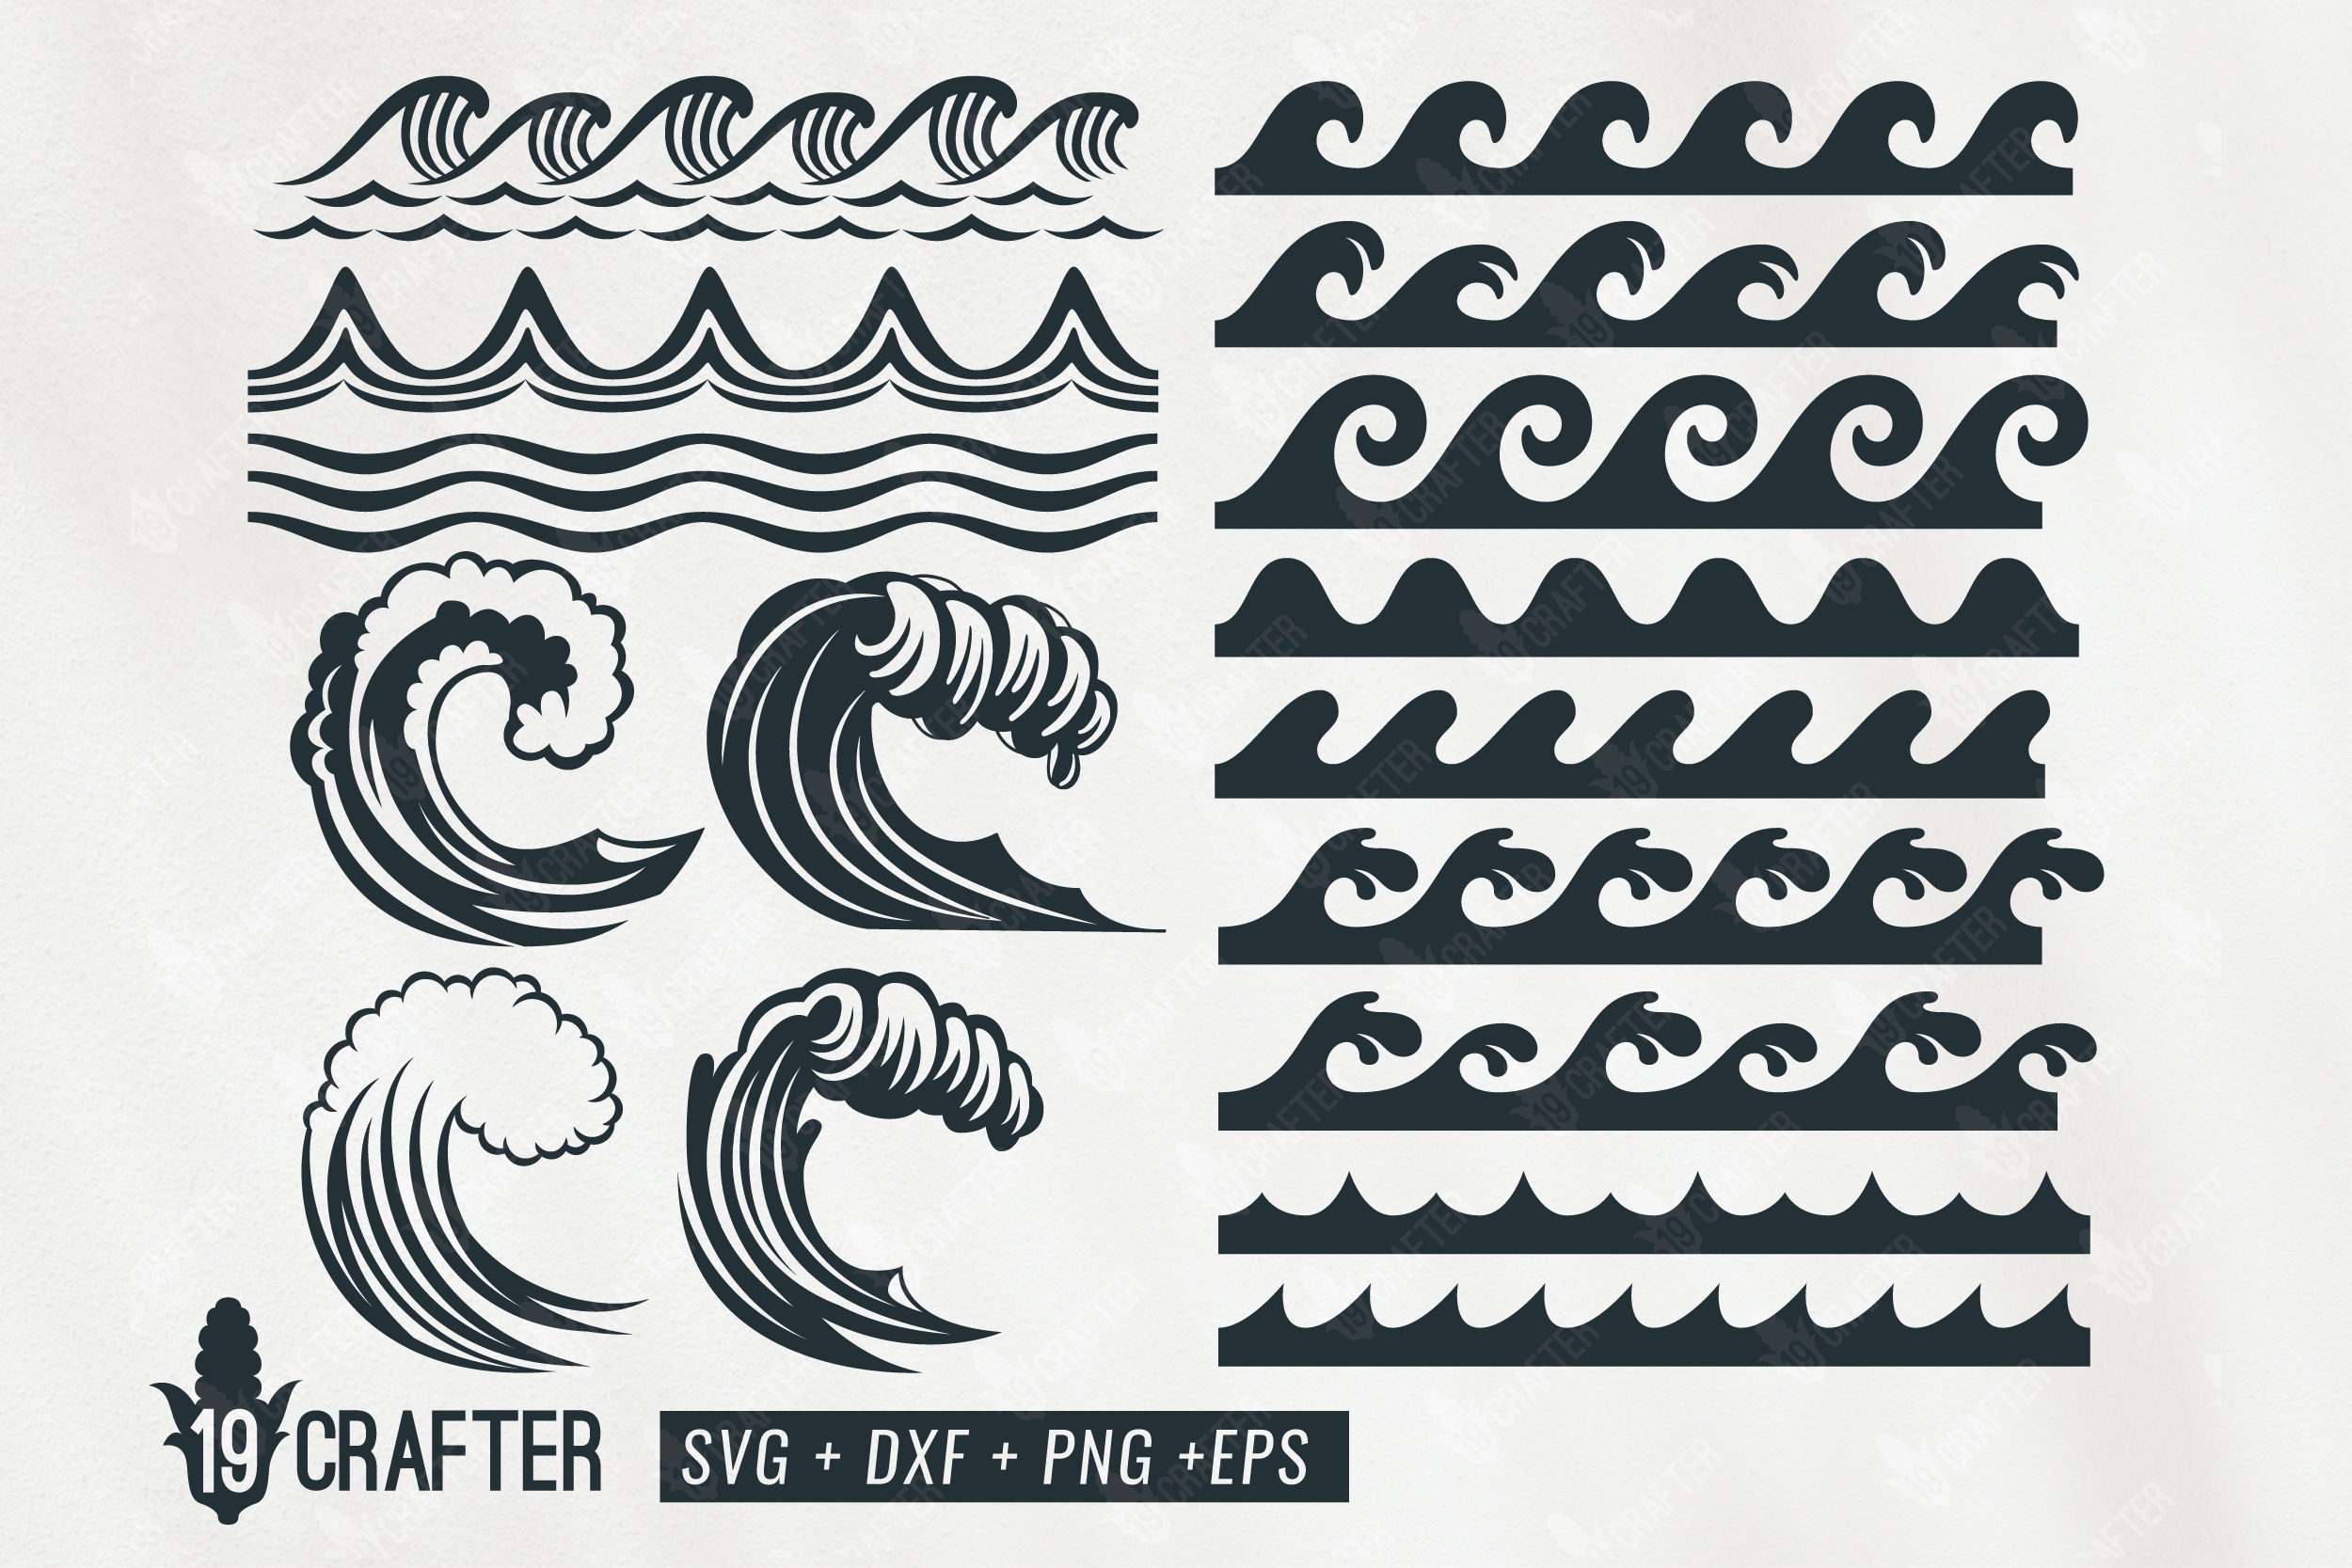 Download Summer Themed Svg Free Svg Cut Files Create Your Diy Projects Using Your Cricut Explore Silhouette And More The Free Cut Files Include Svg Dxf Eps And Png Files